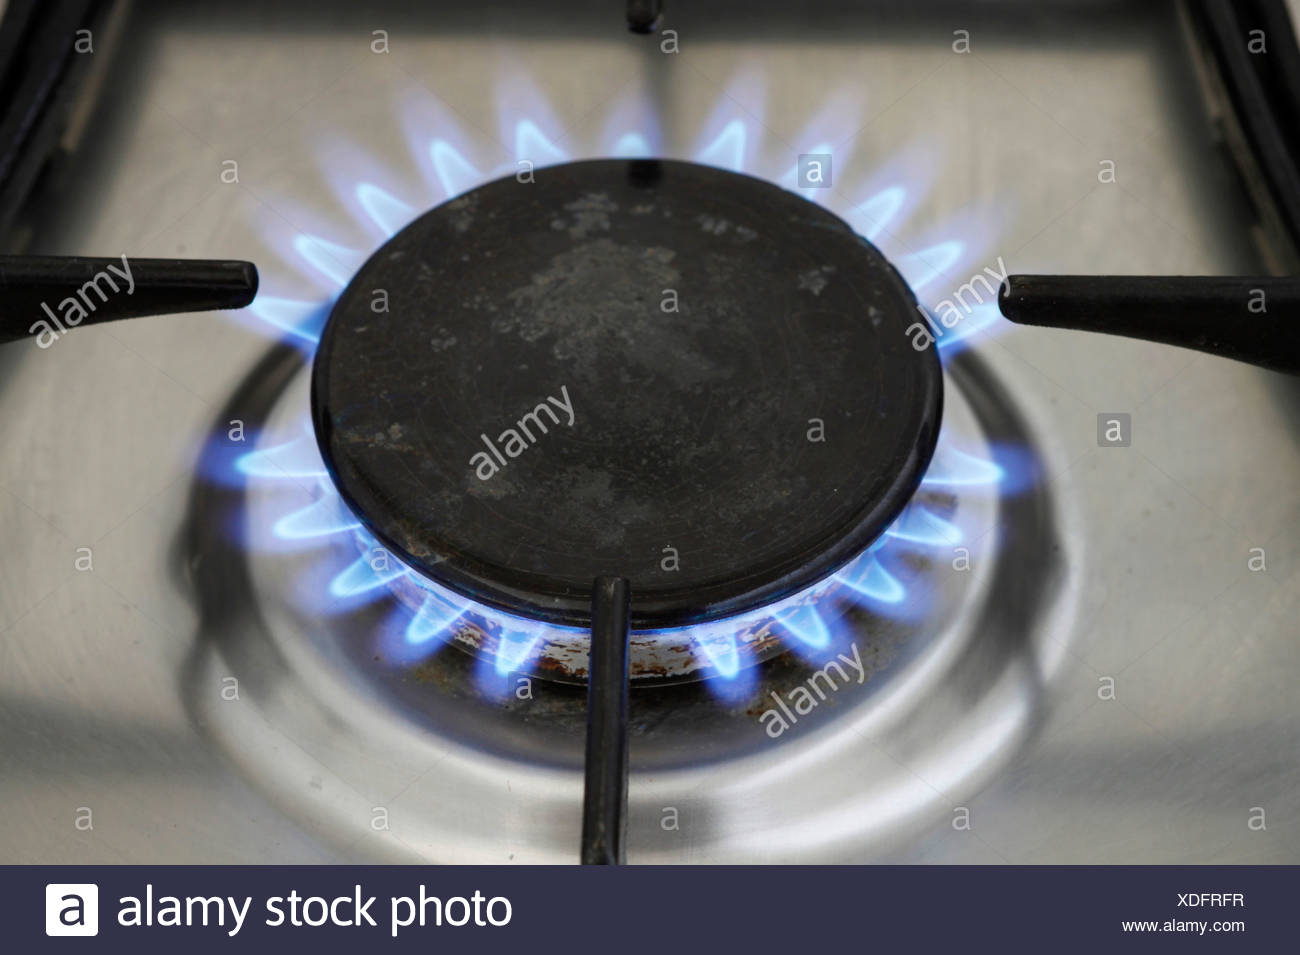 Gas cooker - Stock Image